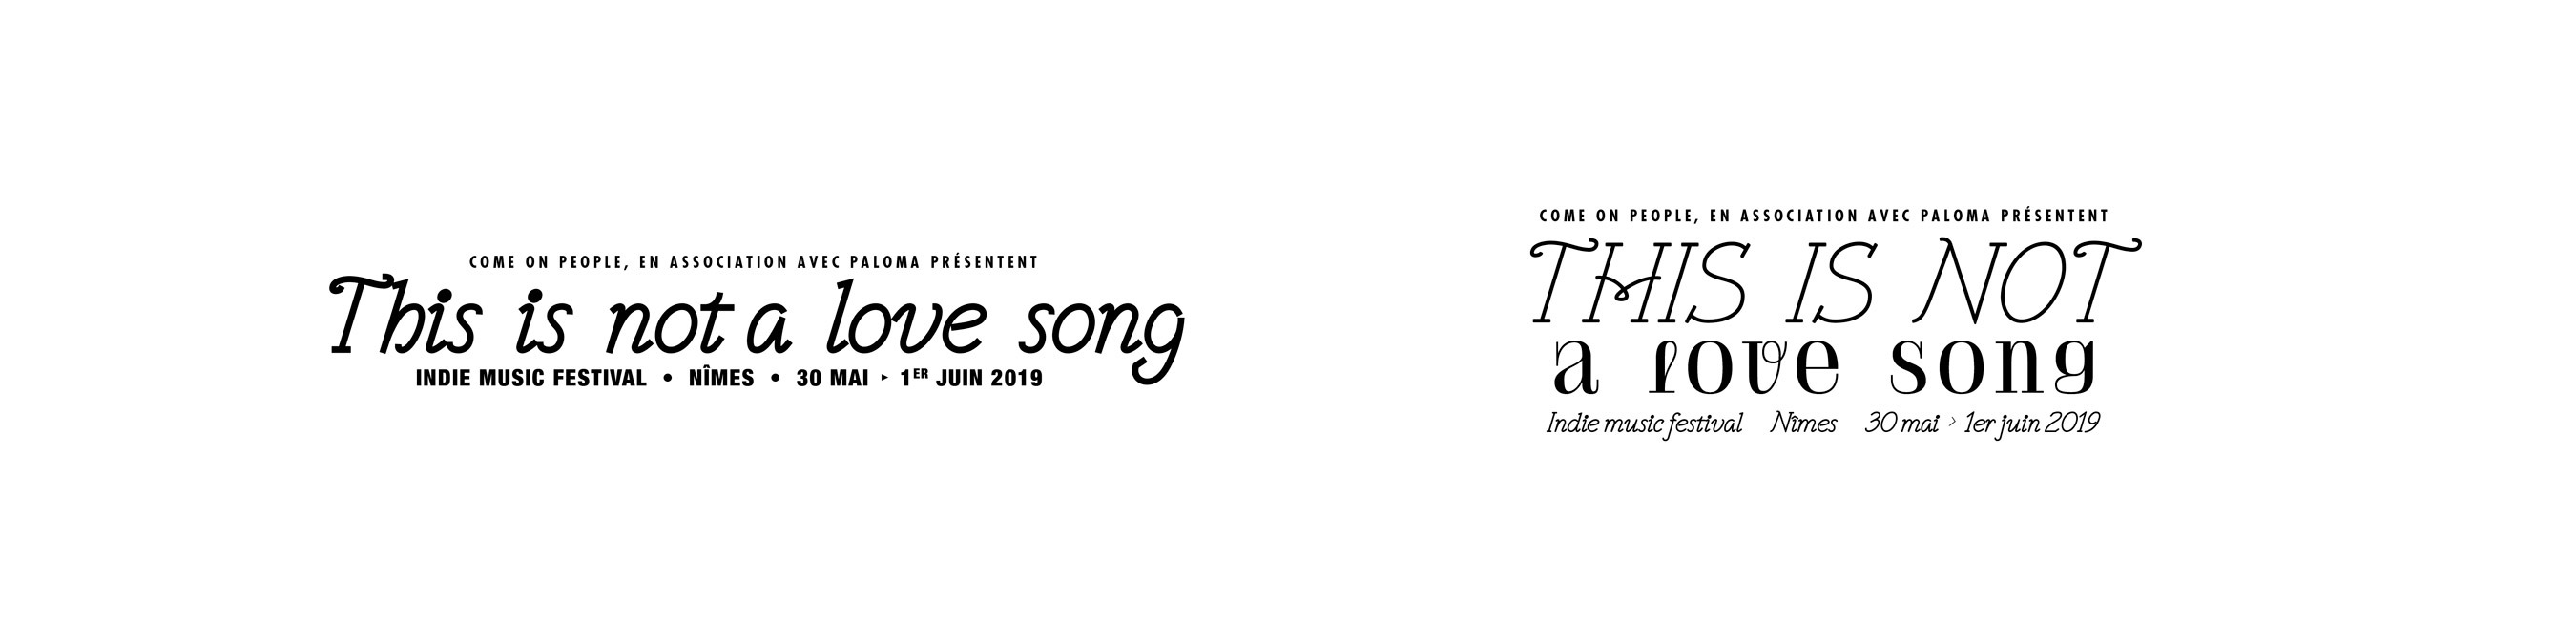 Affiche festival This is not a love song 2019 2